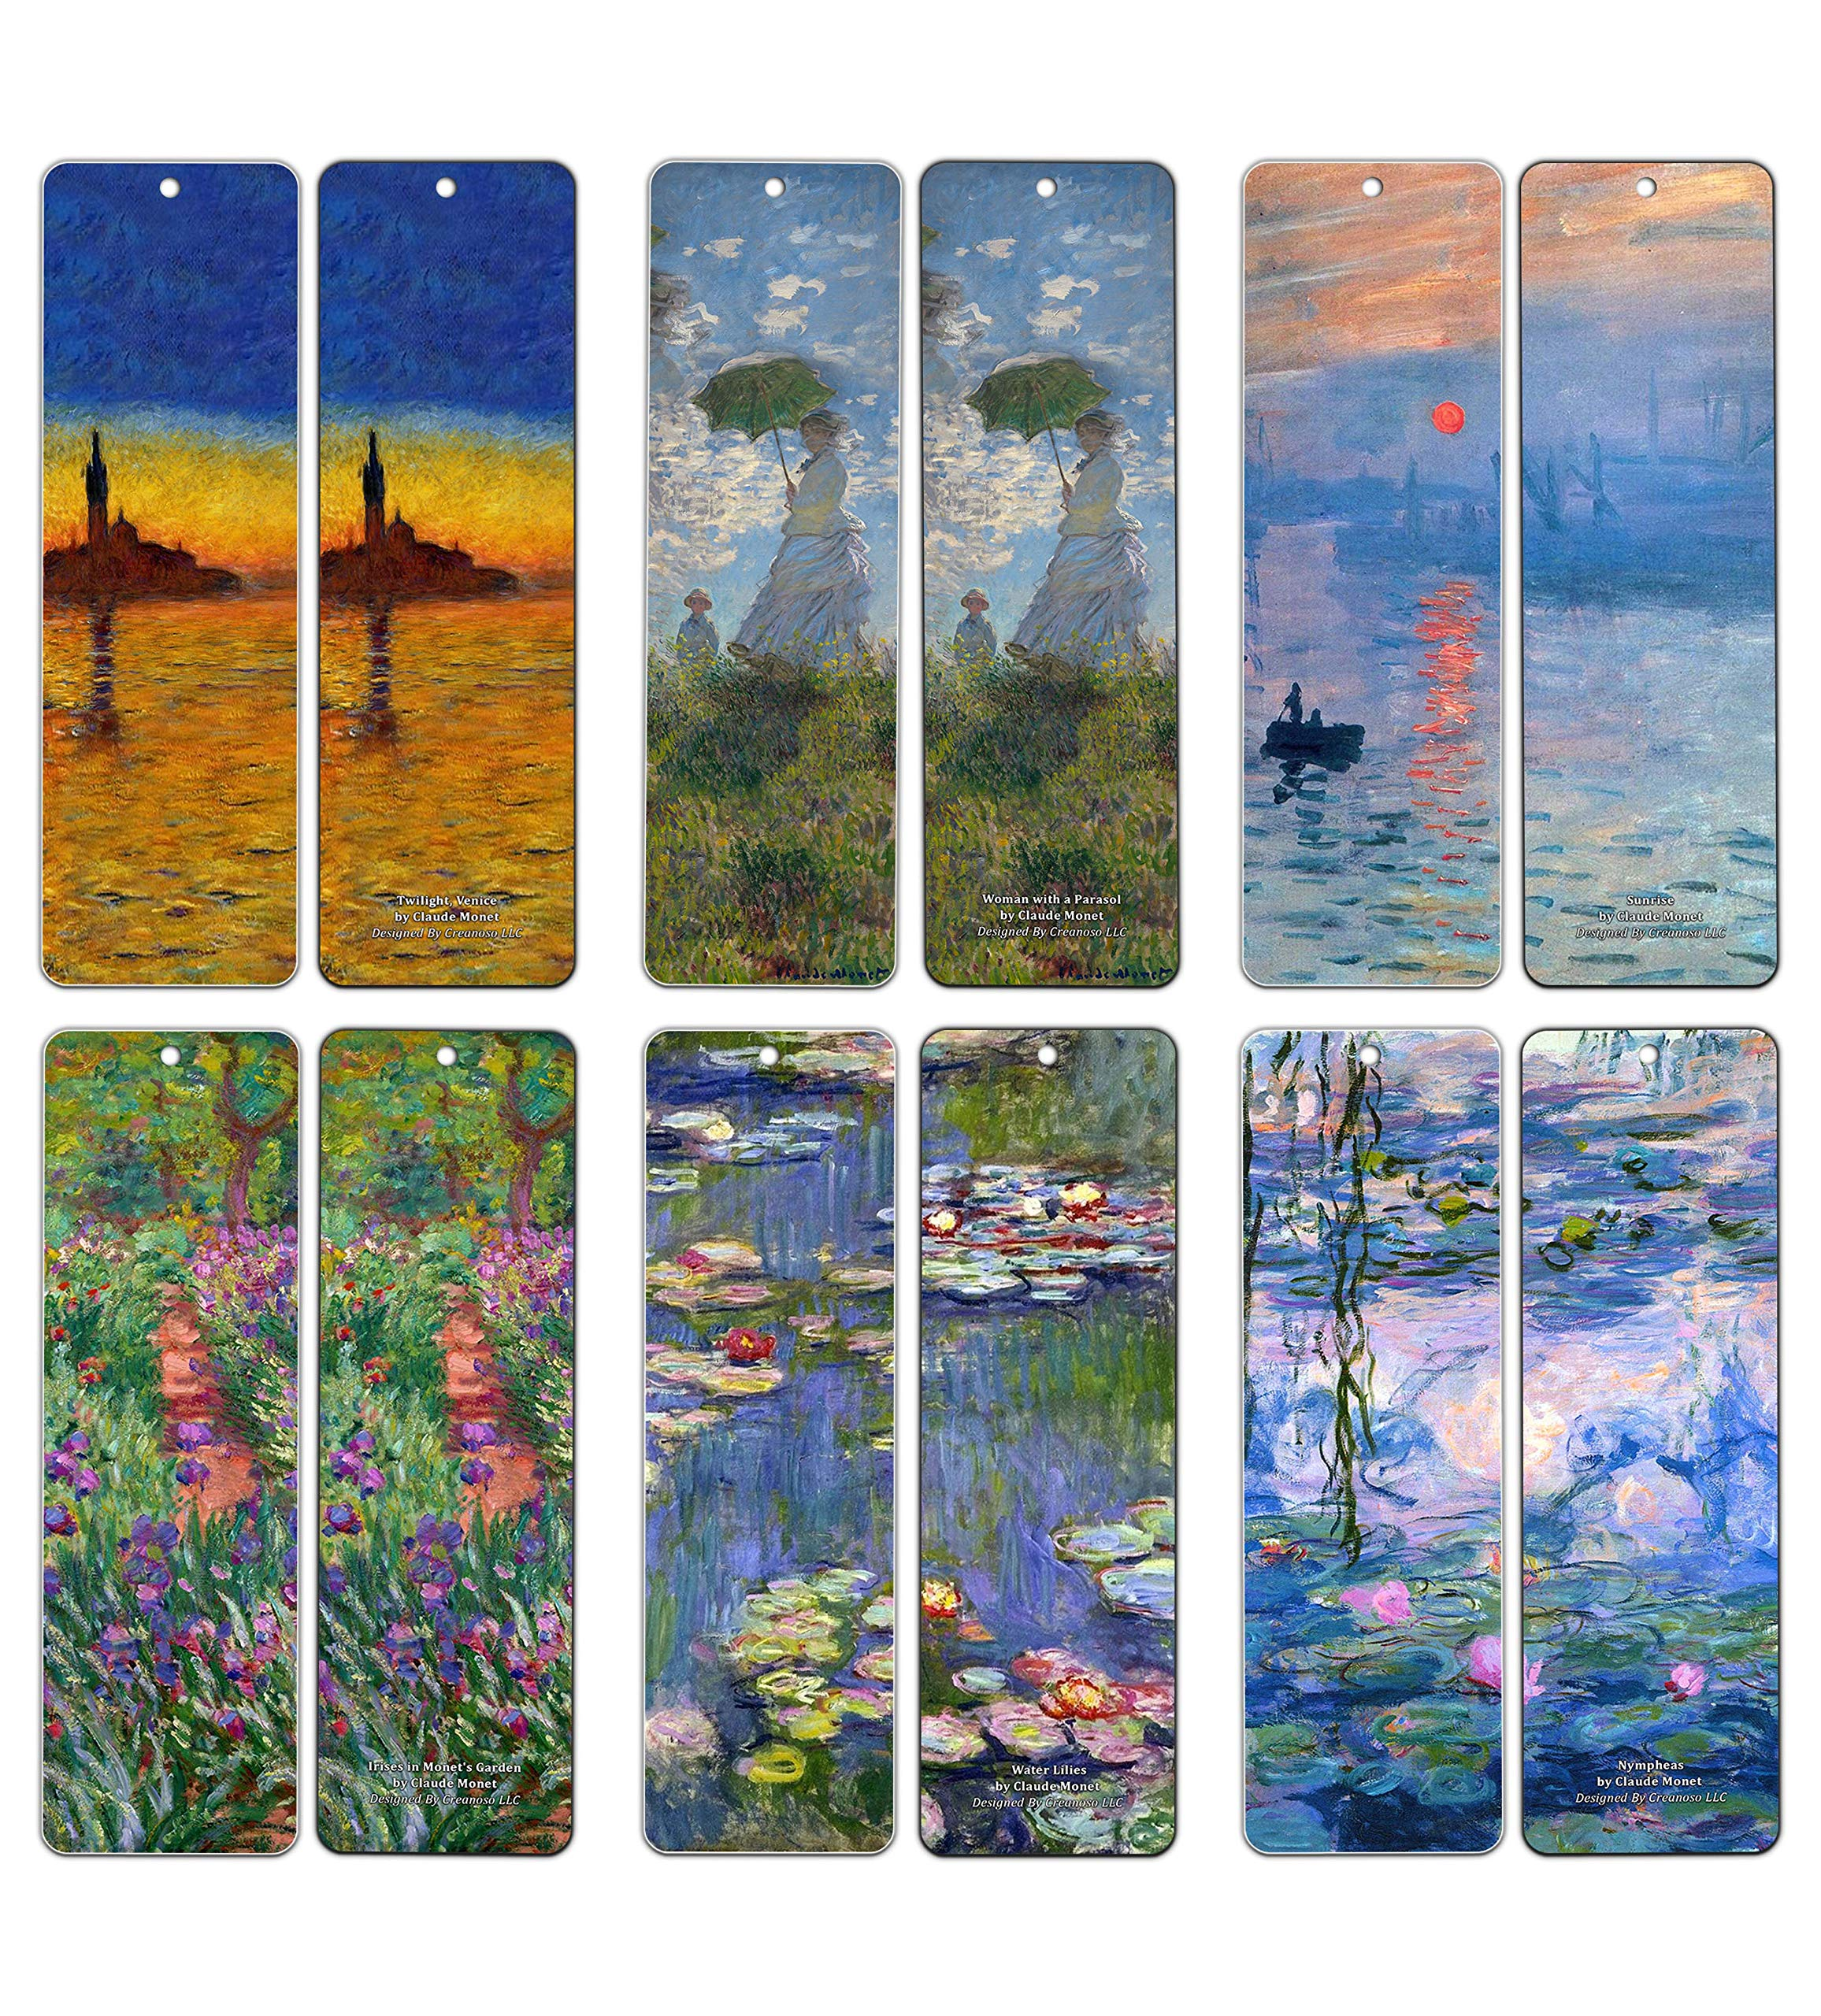 Claude Monet Bookmarks (60-Pack) - Famous Paintings Water Lilies - Bookmarks for Books Men Women Kids Boys Girls - Wall Decor